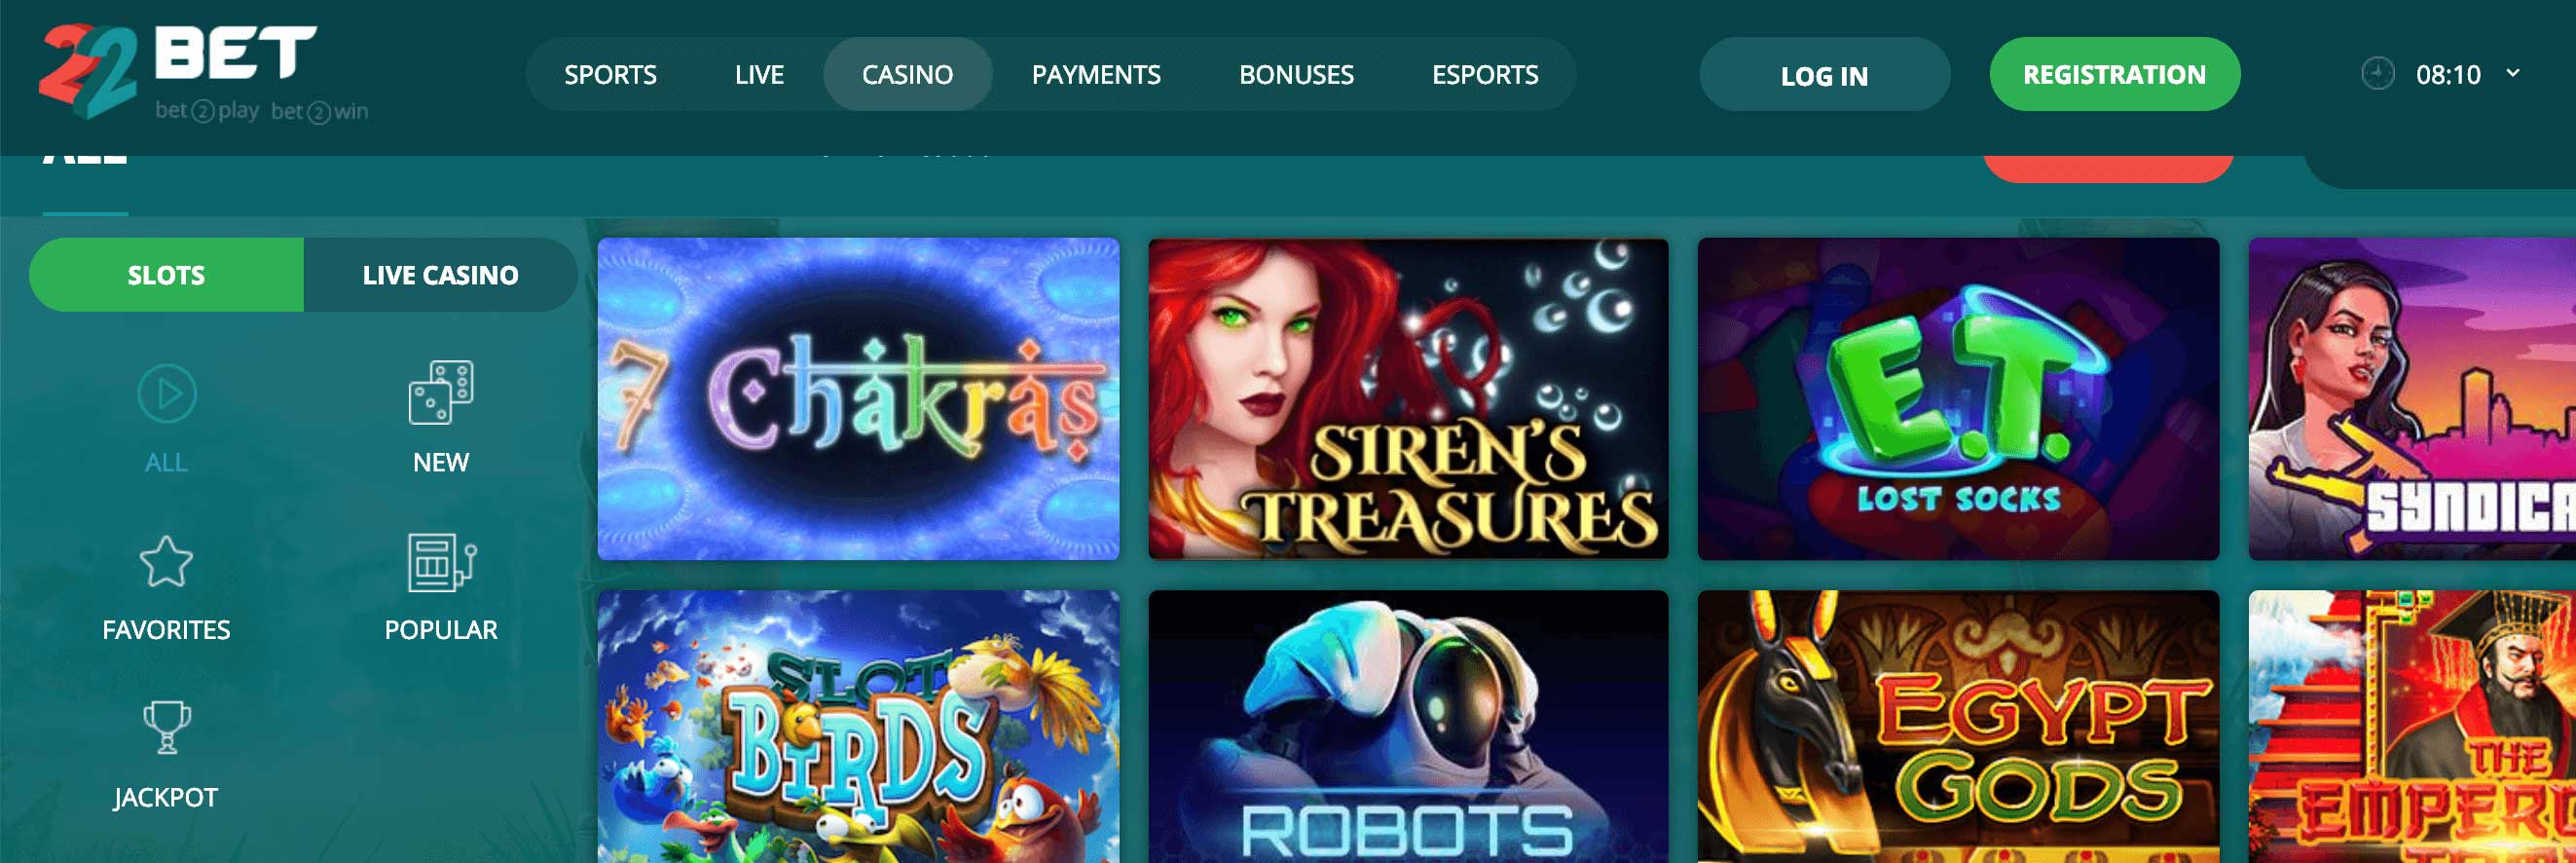 Casino games at 22bet